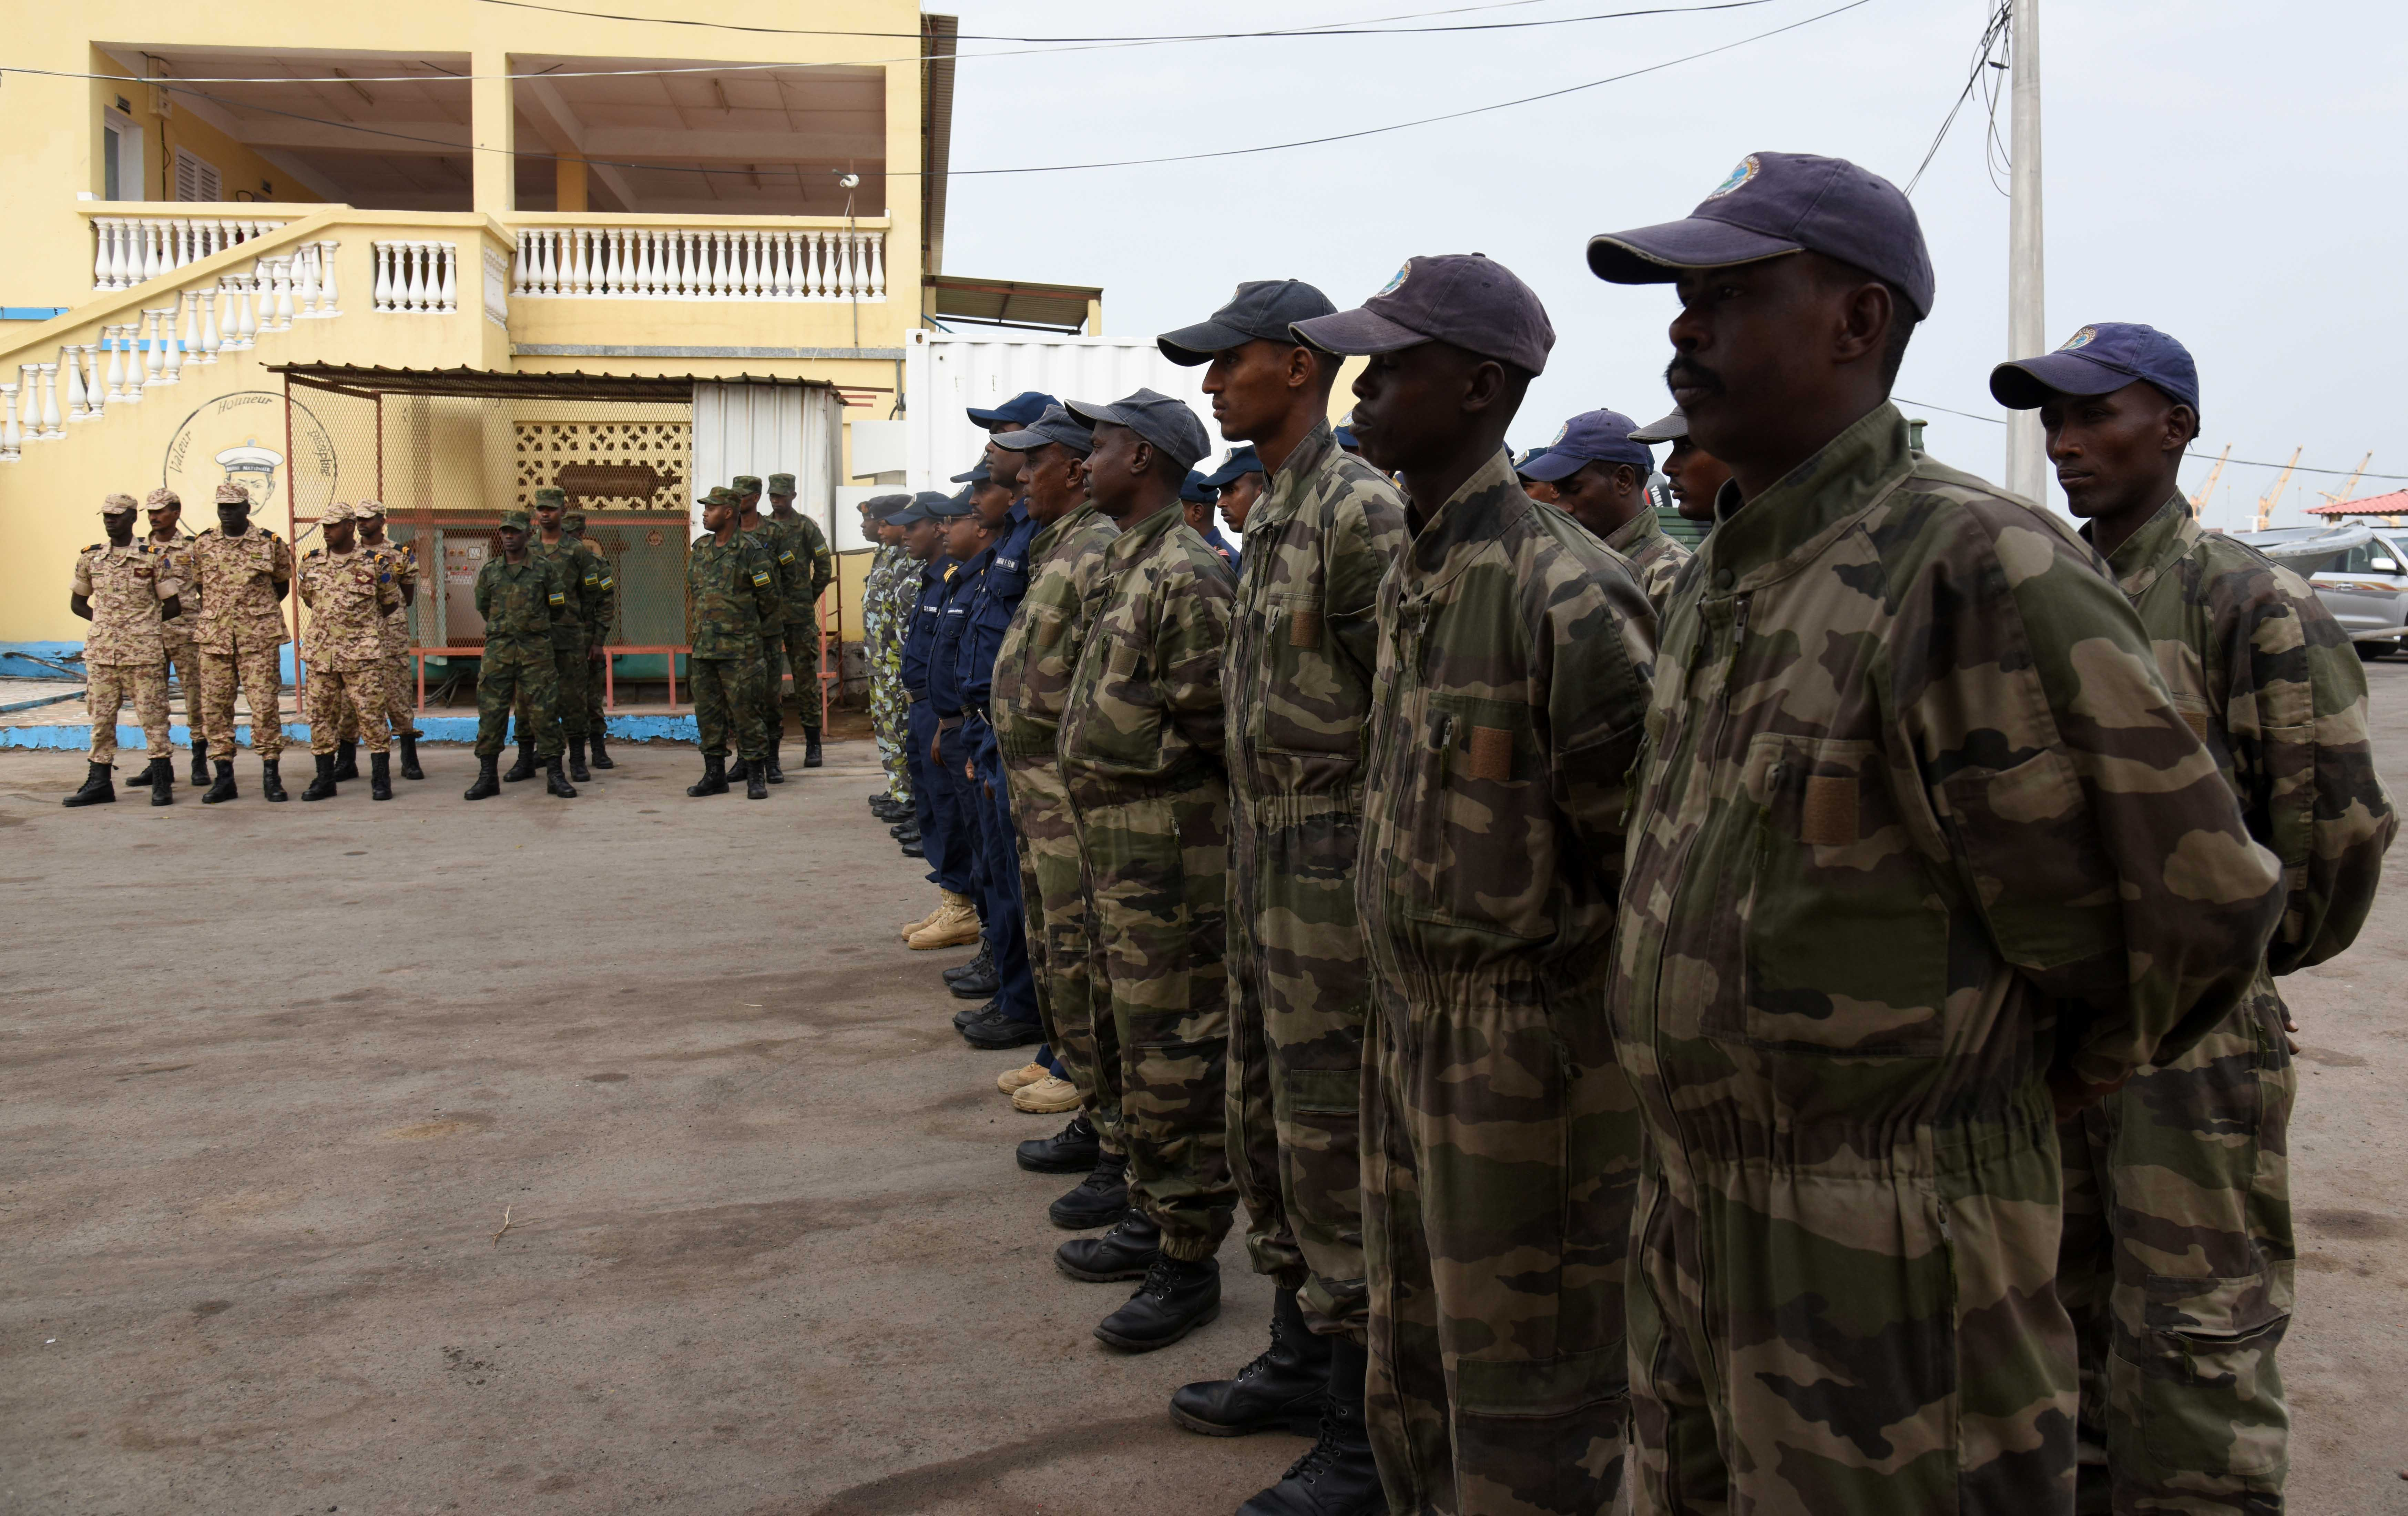 Participants from Sudan, Rwanda, Kenya, and Djibouti stand in formation during the opening ceremony of exercise Cutlass Express 2016 at the Djibouti Navy Base, Djibouti, Feb. 1, 2016. More than 450 personnel from 18 countries coordinated at two locations for the fifth iteration of the maritime exercise. (U.S. Air Force photo by Staff Sgt. Victoria Sneed)